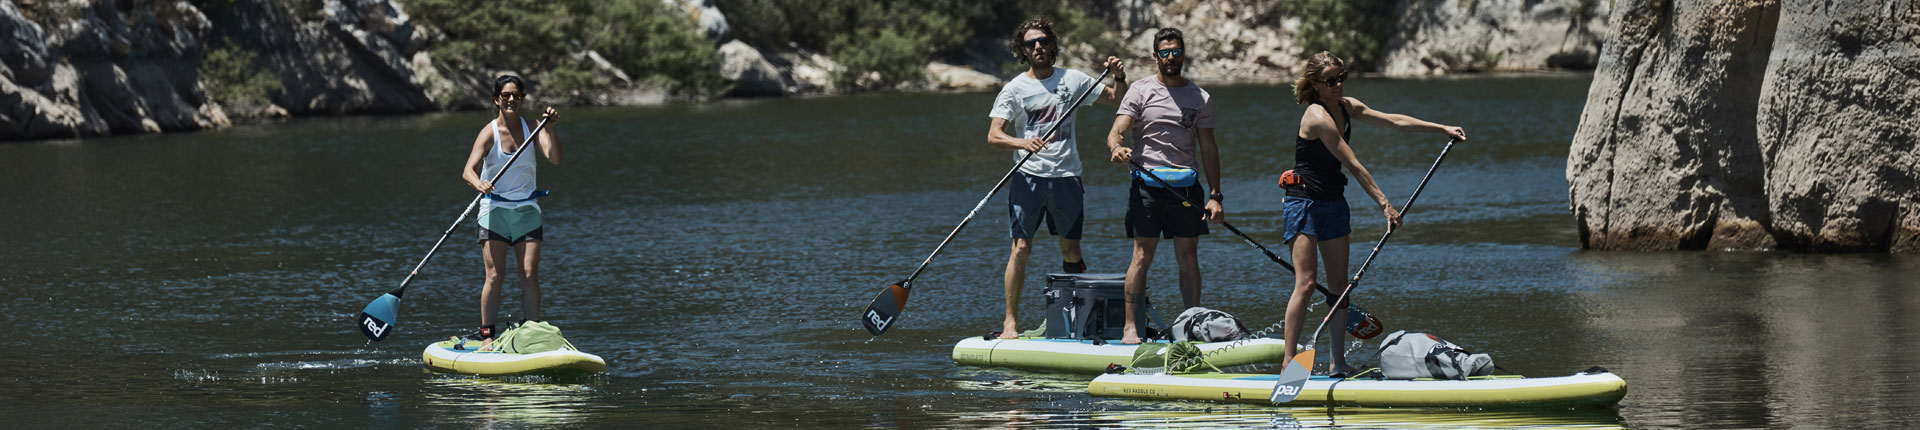 group of paddle boarders exploring the river